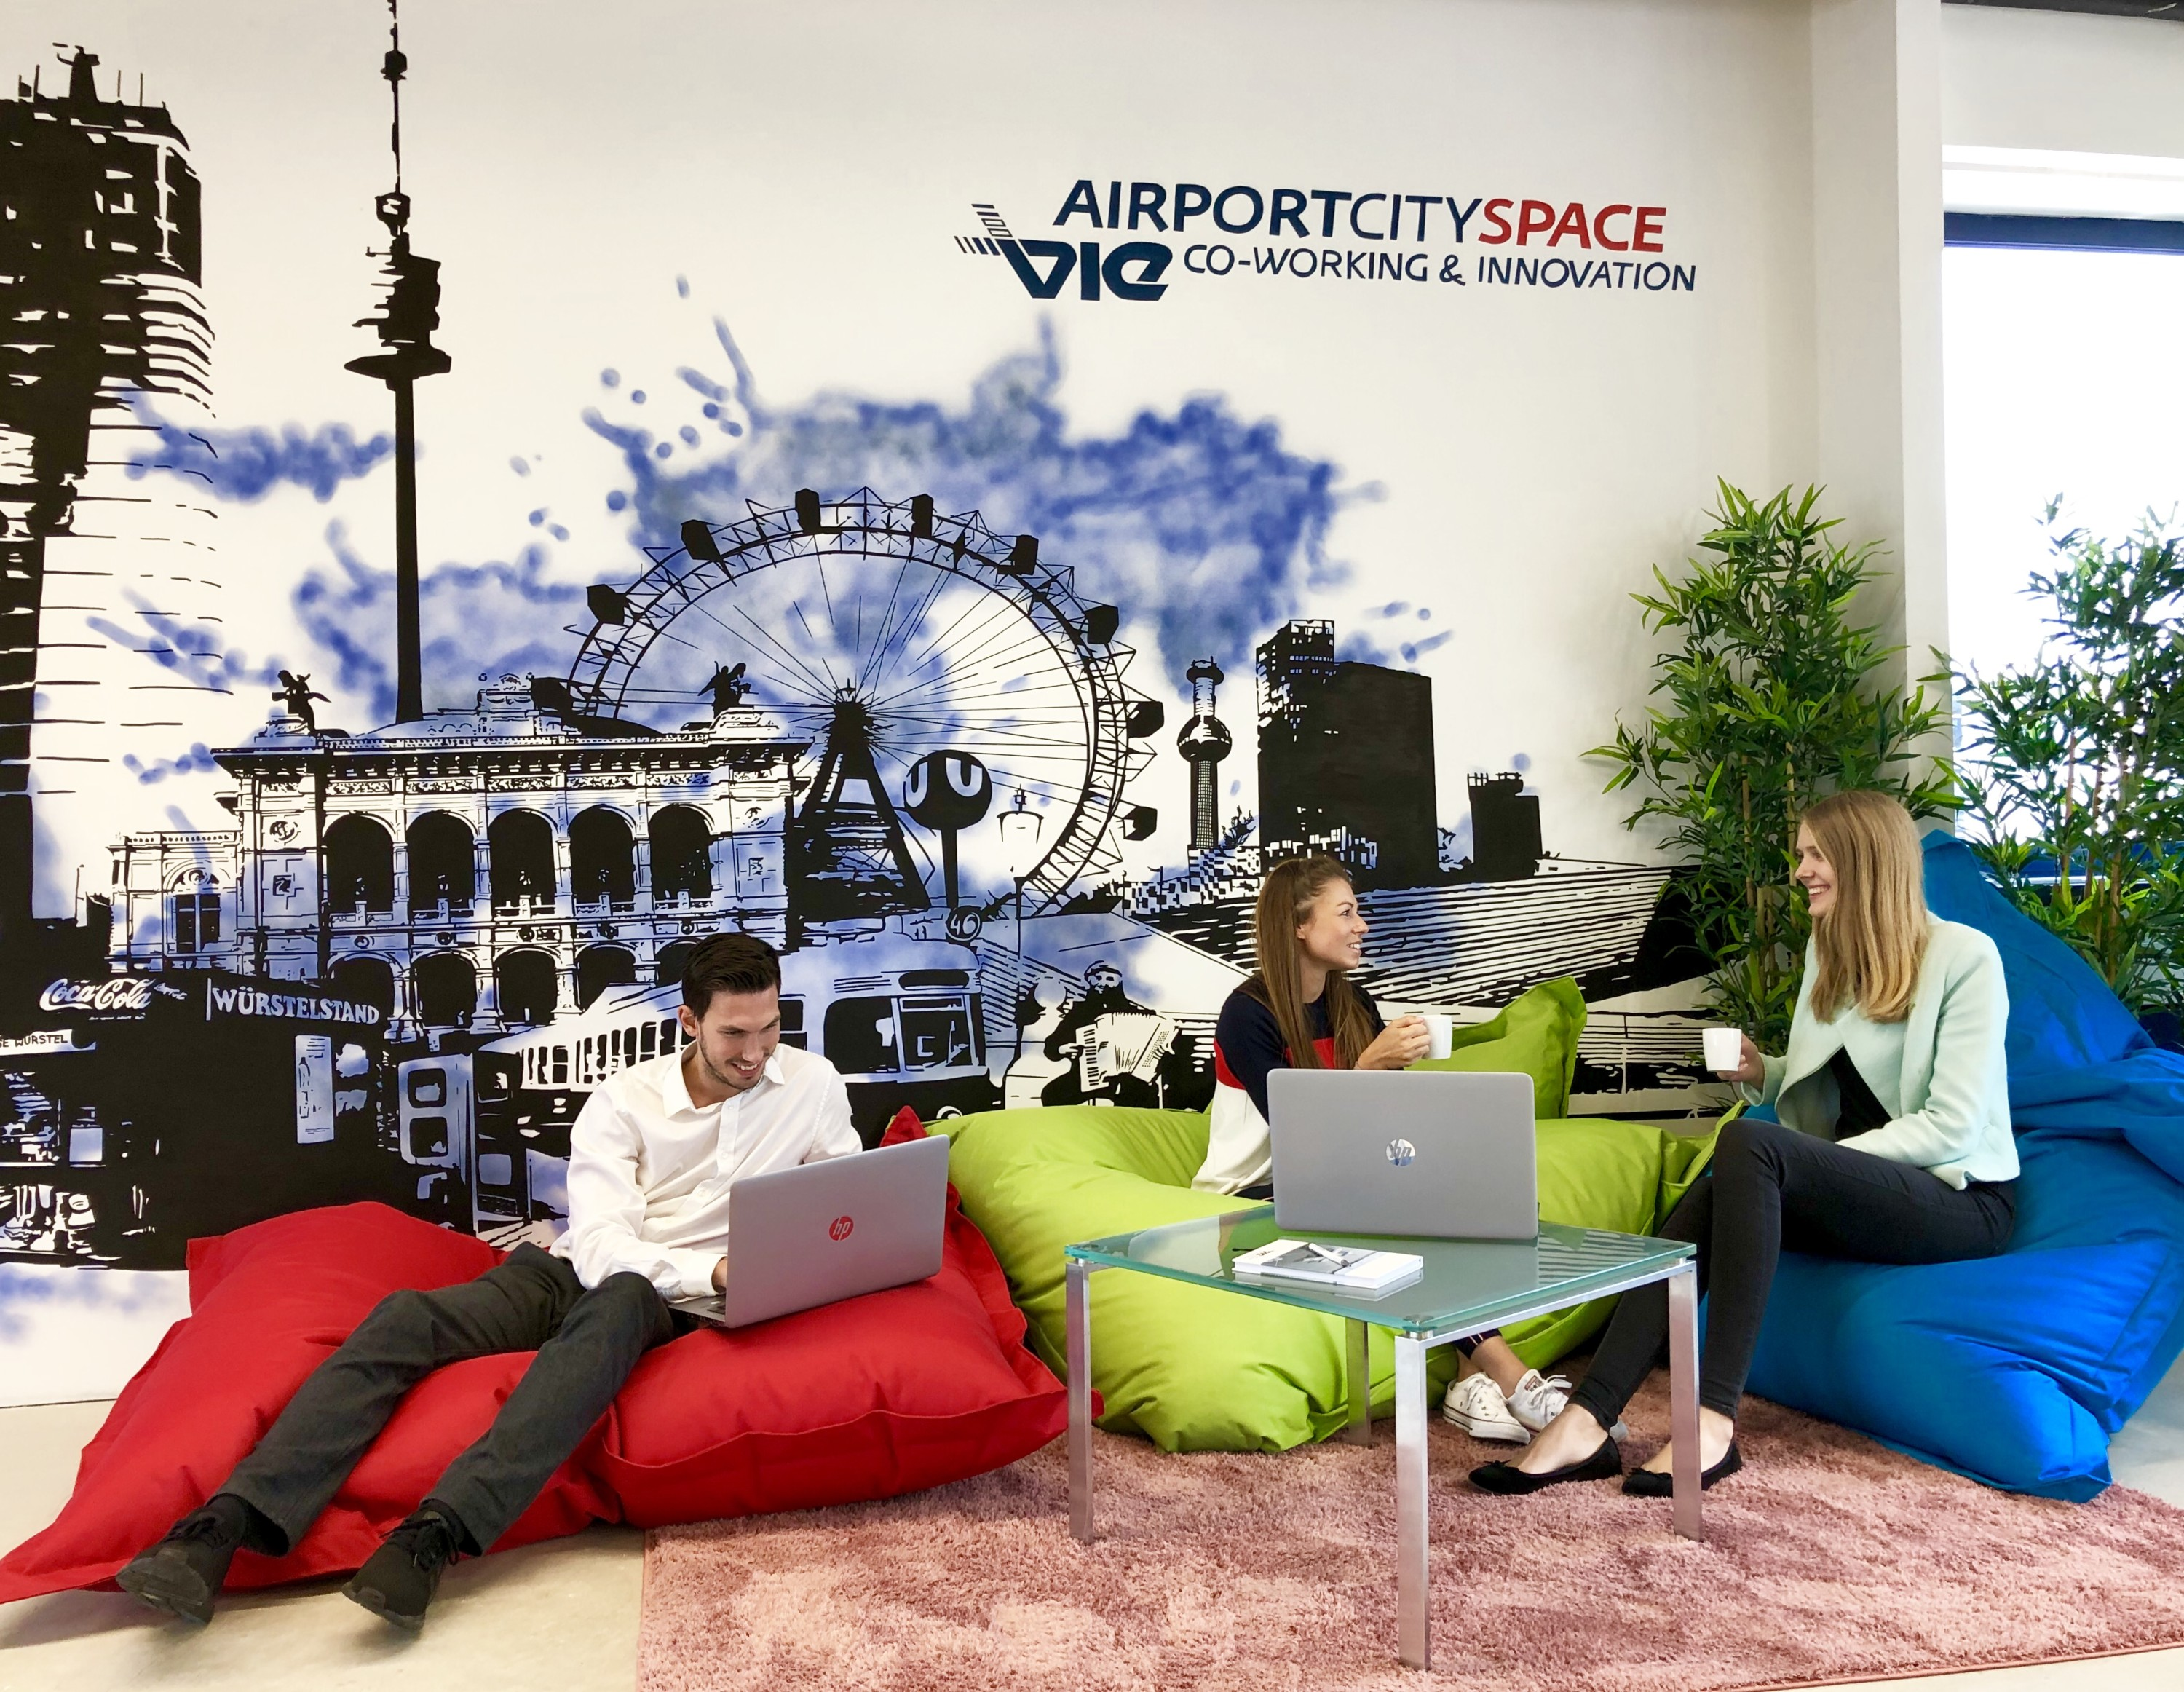 AirportCity Space